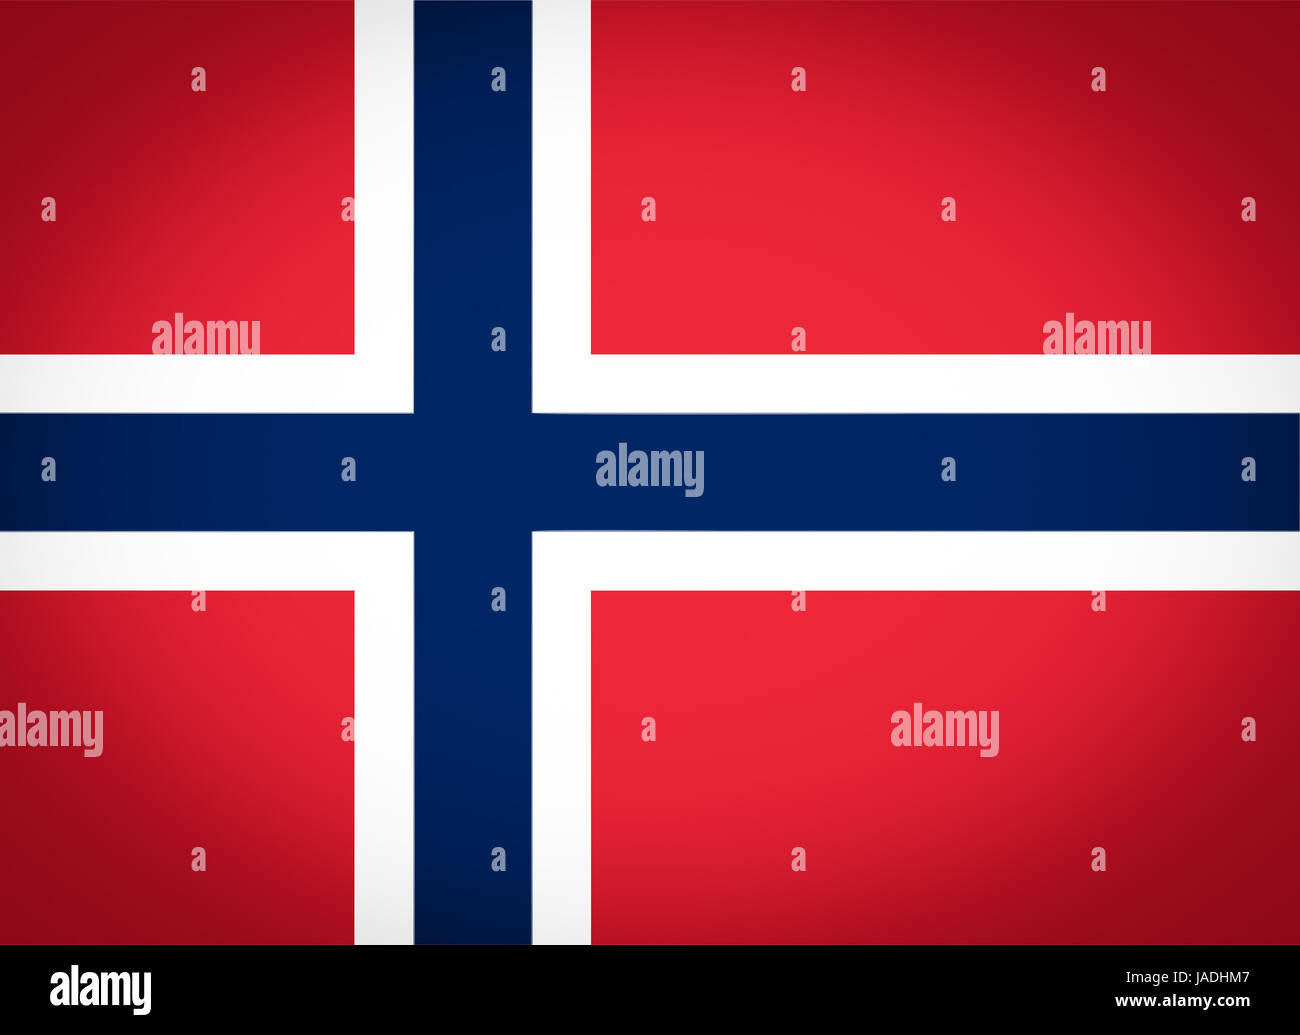 Norwegian flag of Norway - Proportions: 22:16 - Colours: Red 032 U, Blue 281 U, White vignetted - Stock Image